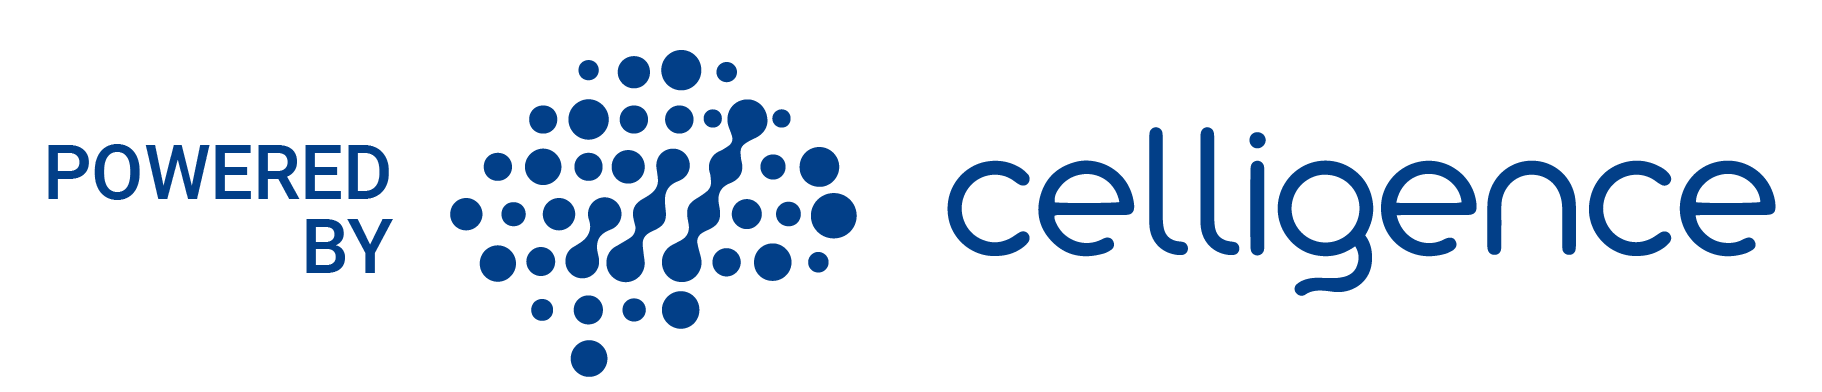 Powered by Celligence logo